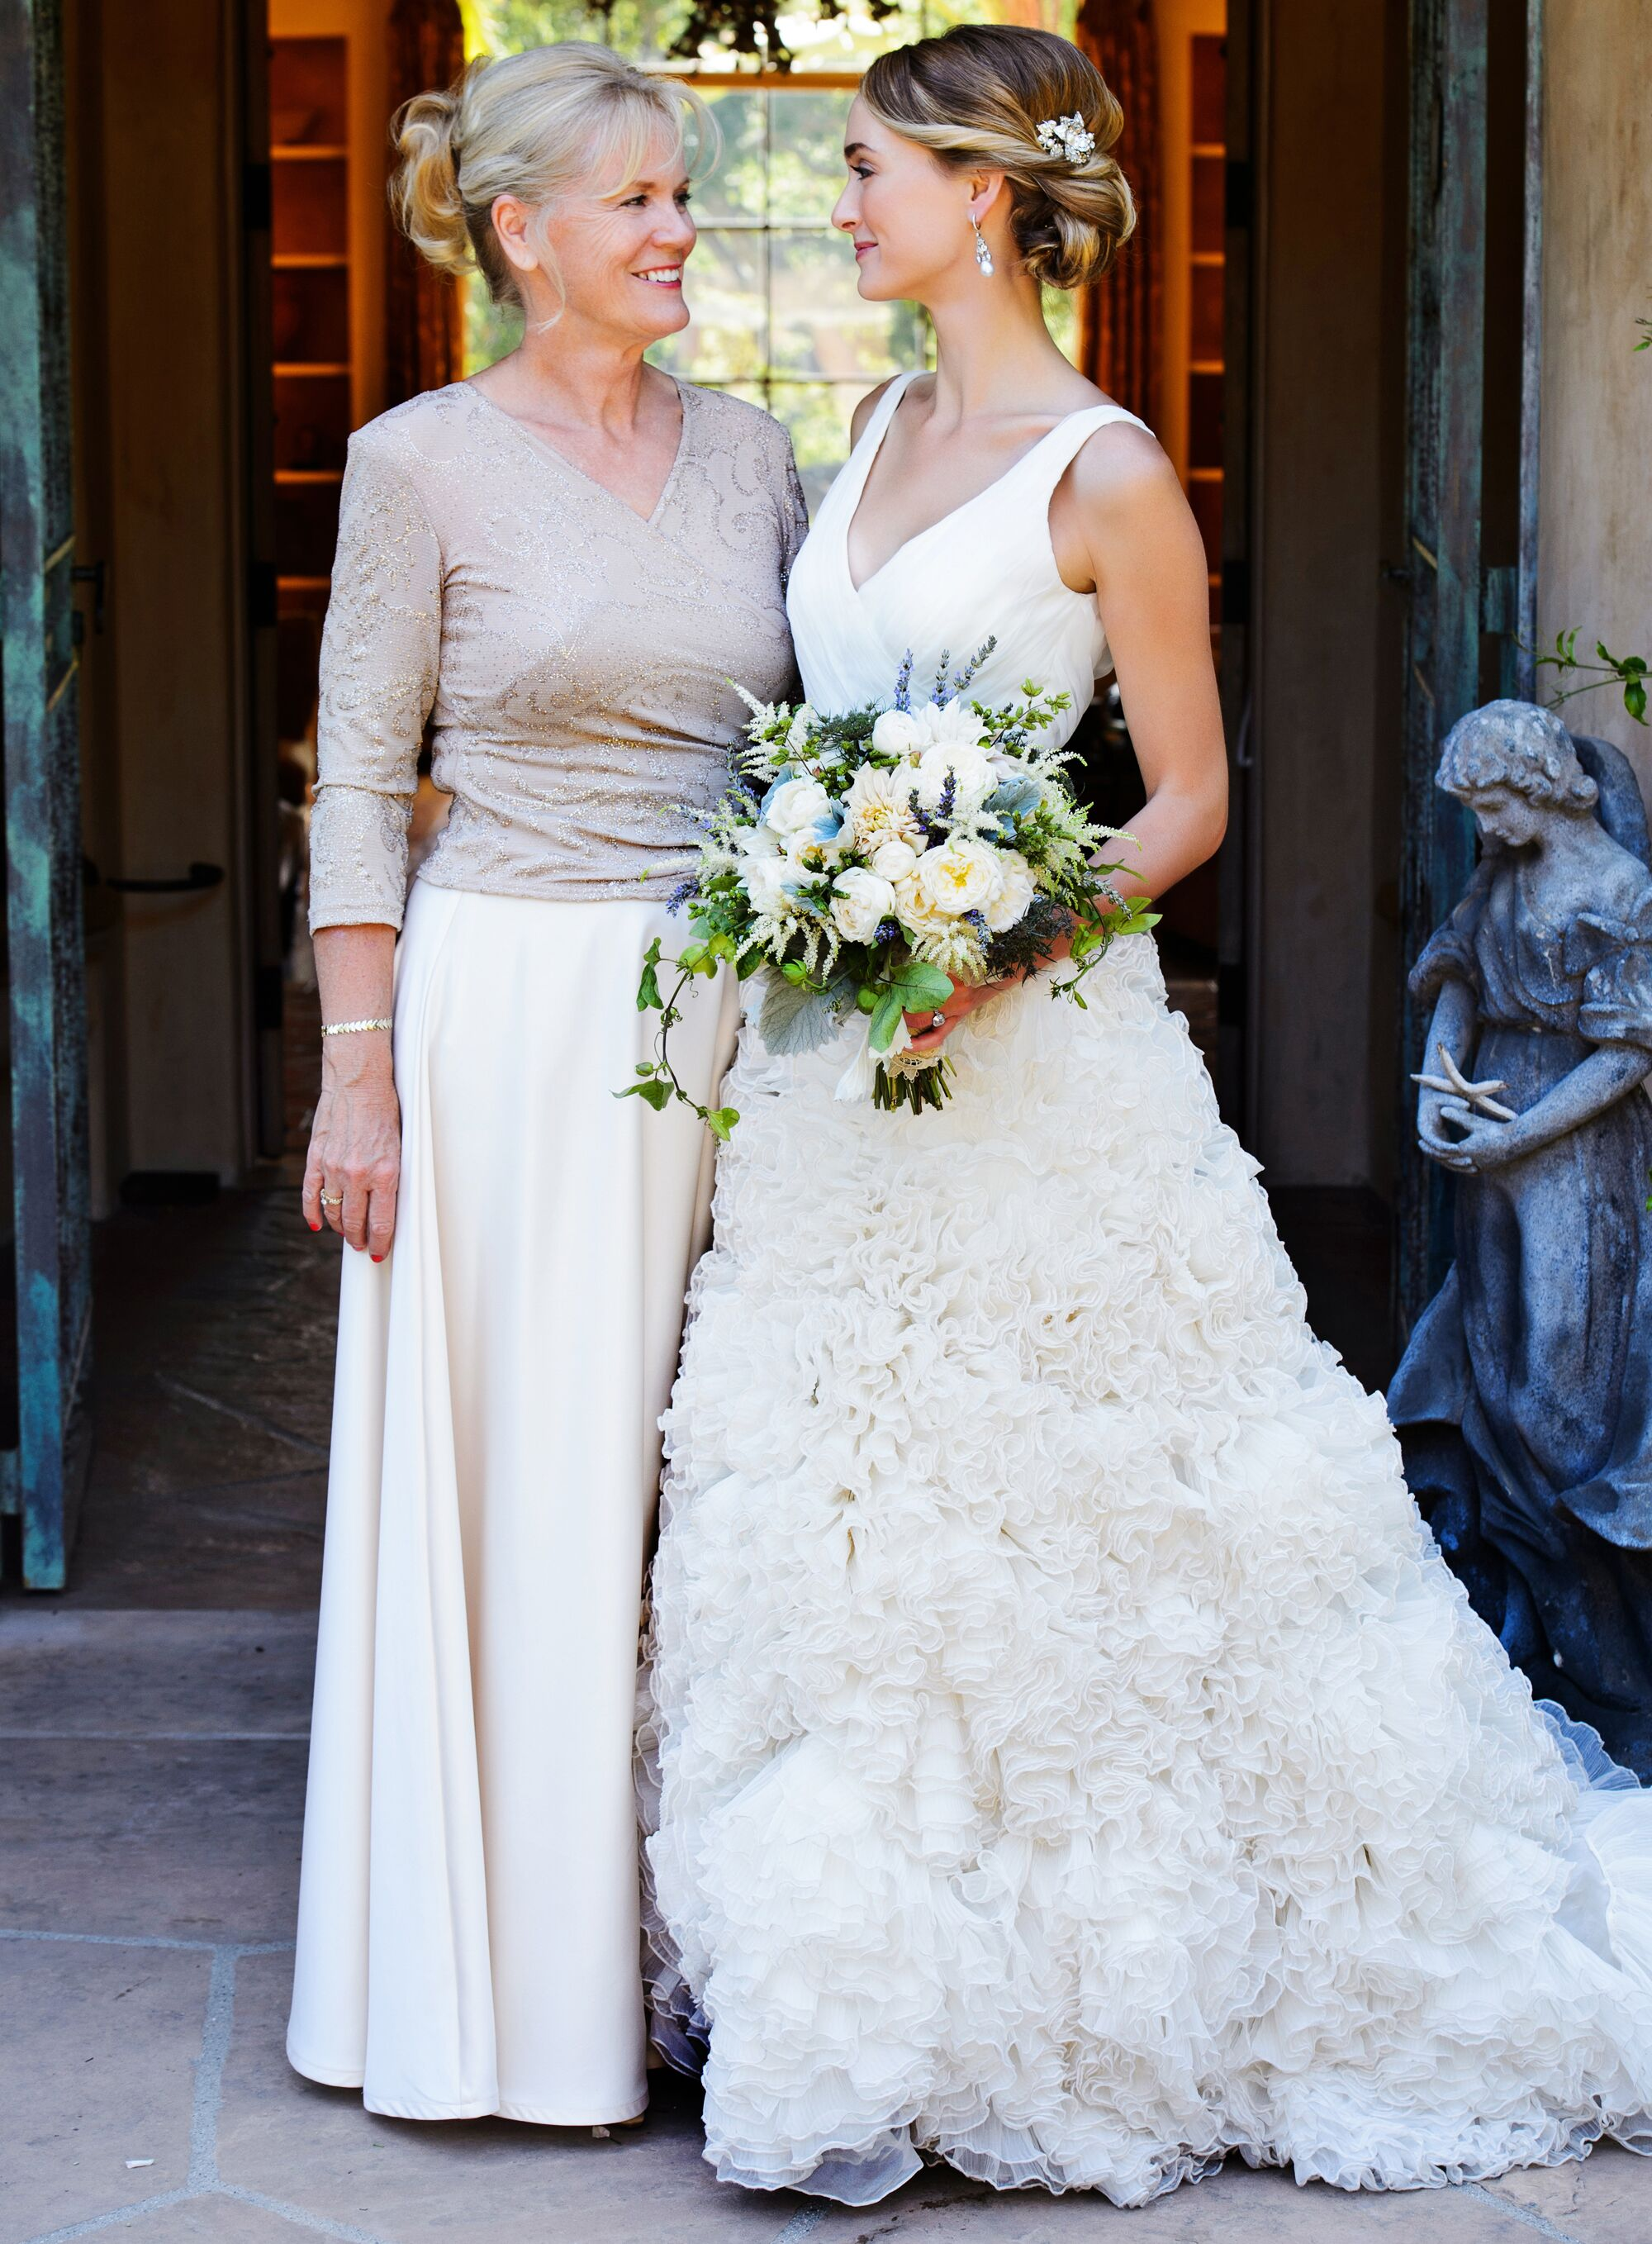 53118f65a98 Emotional Mother of the Bride Photos for Mother s Day